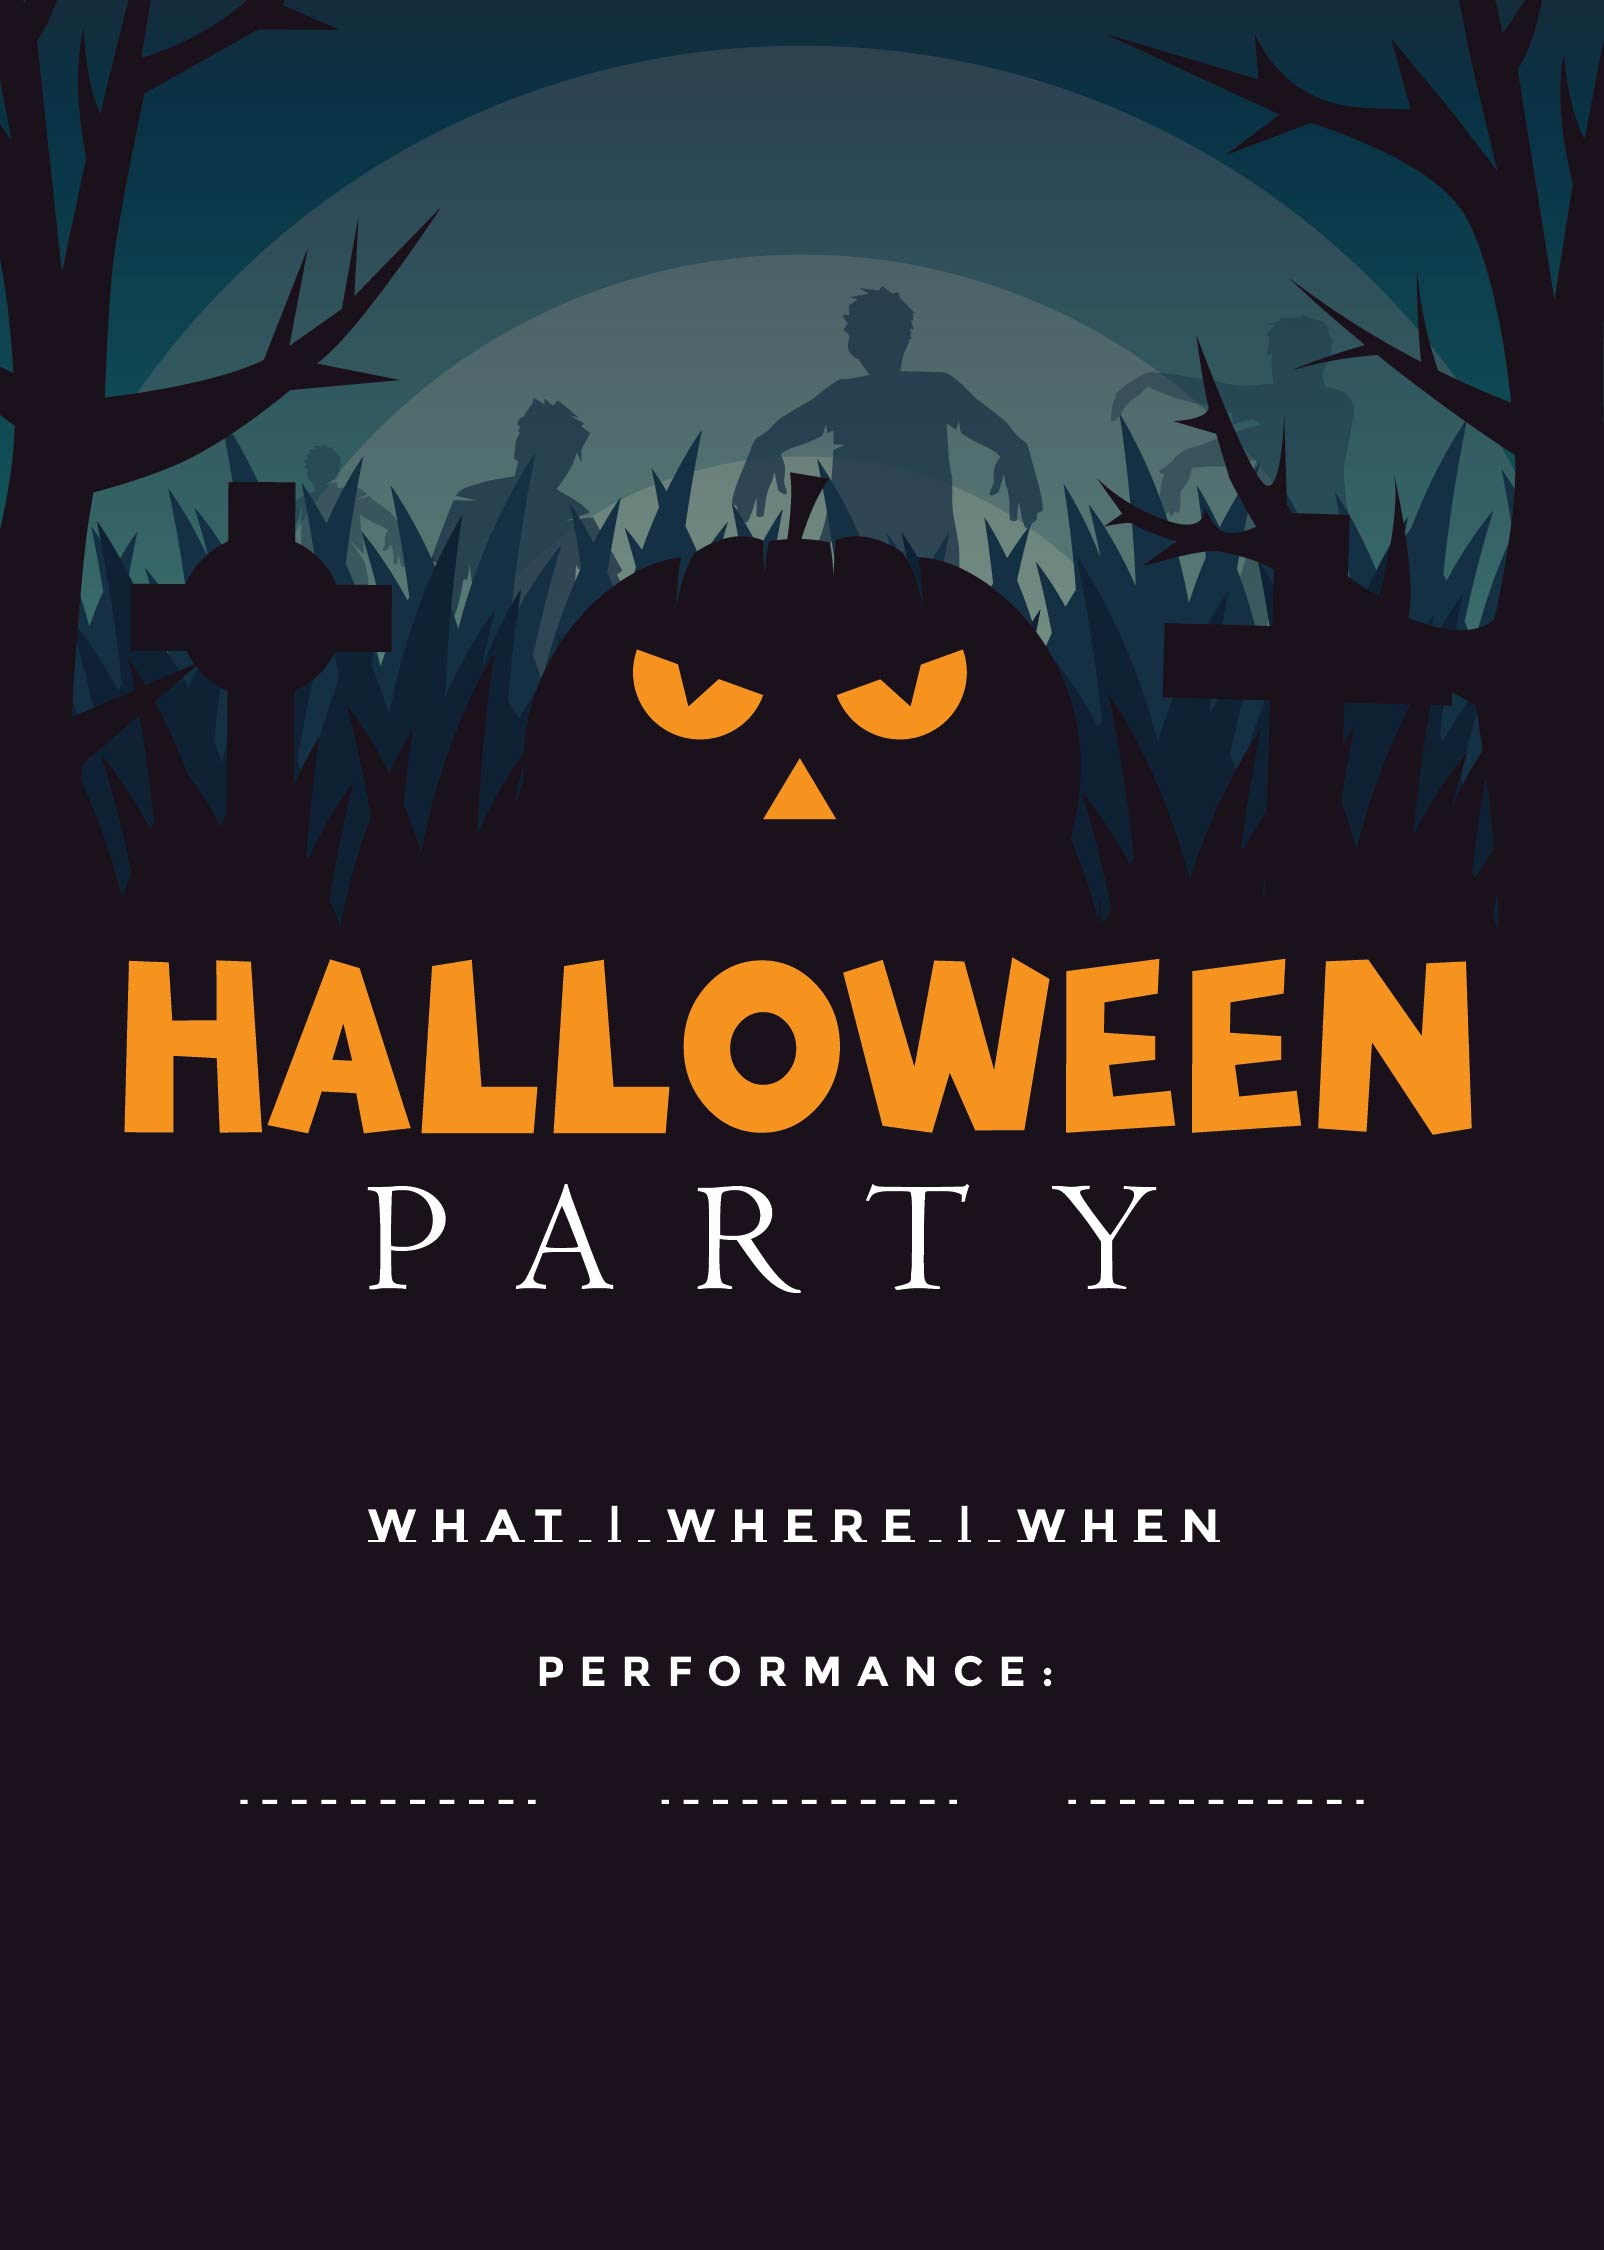 Printable Halloween Flyer Templates